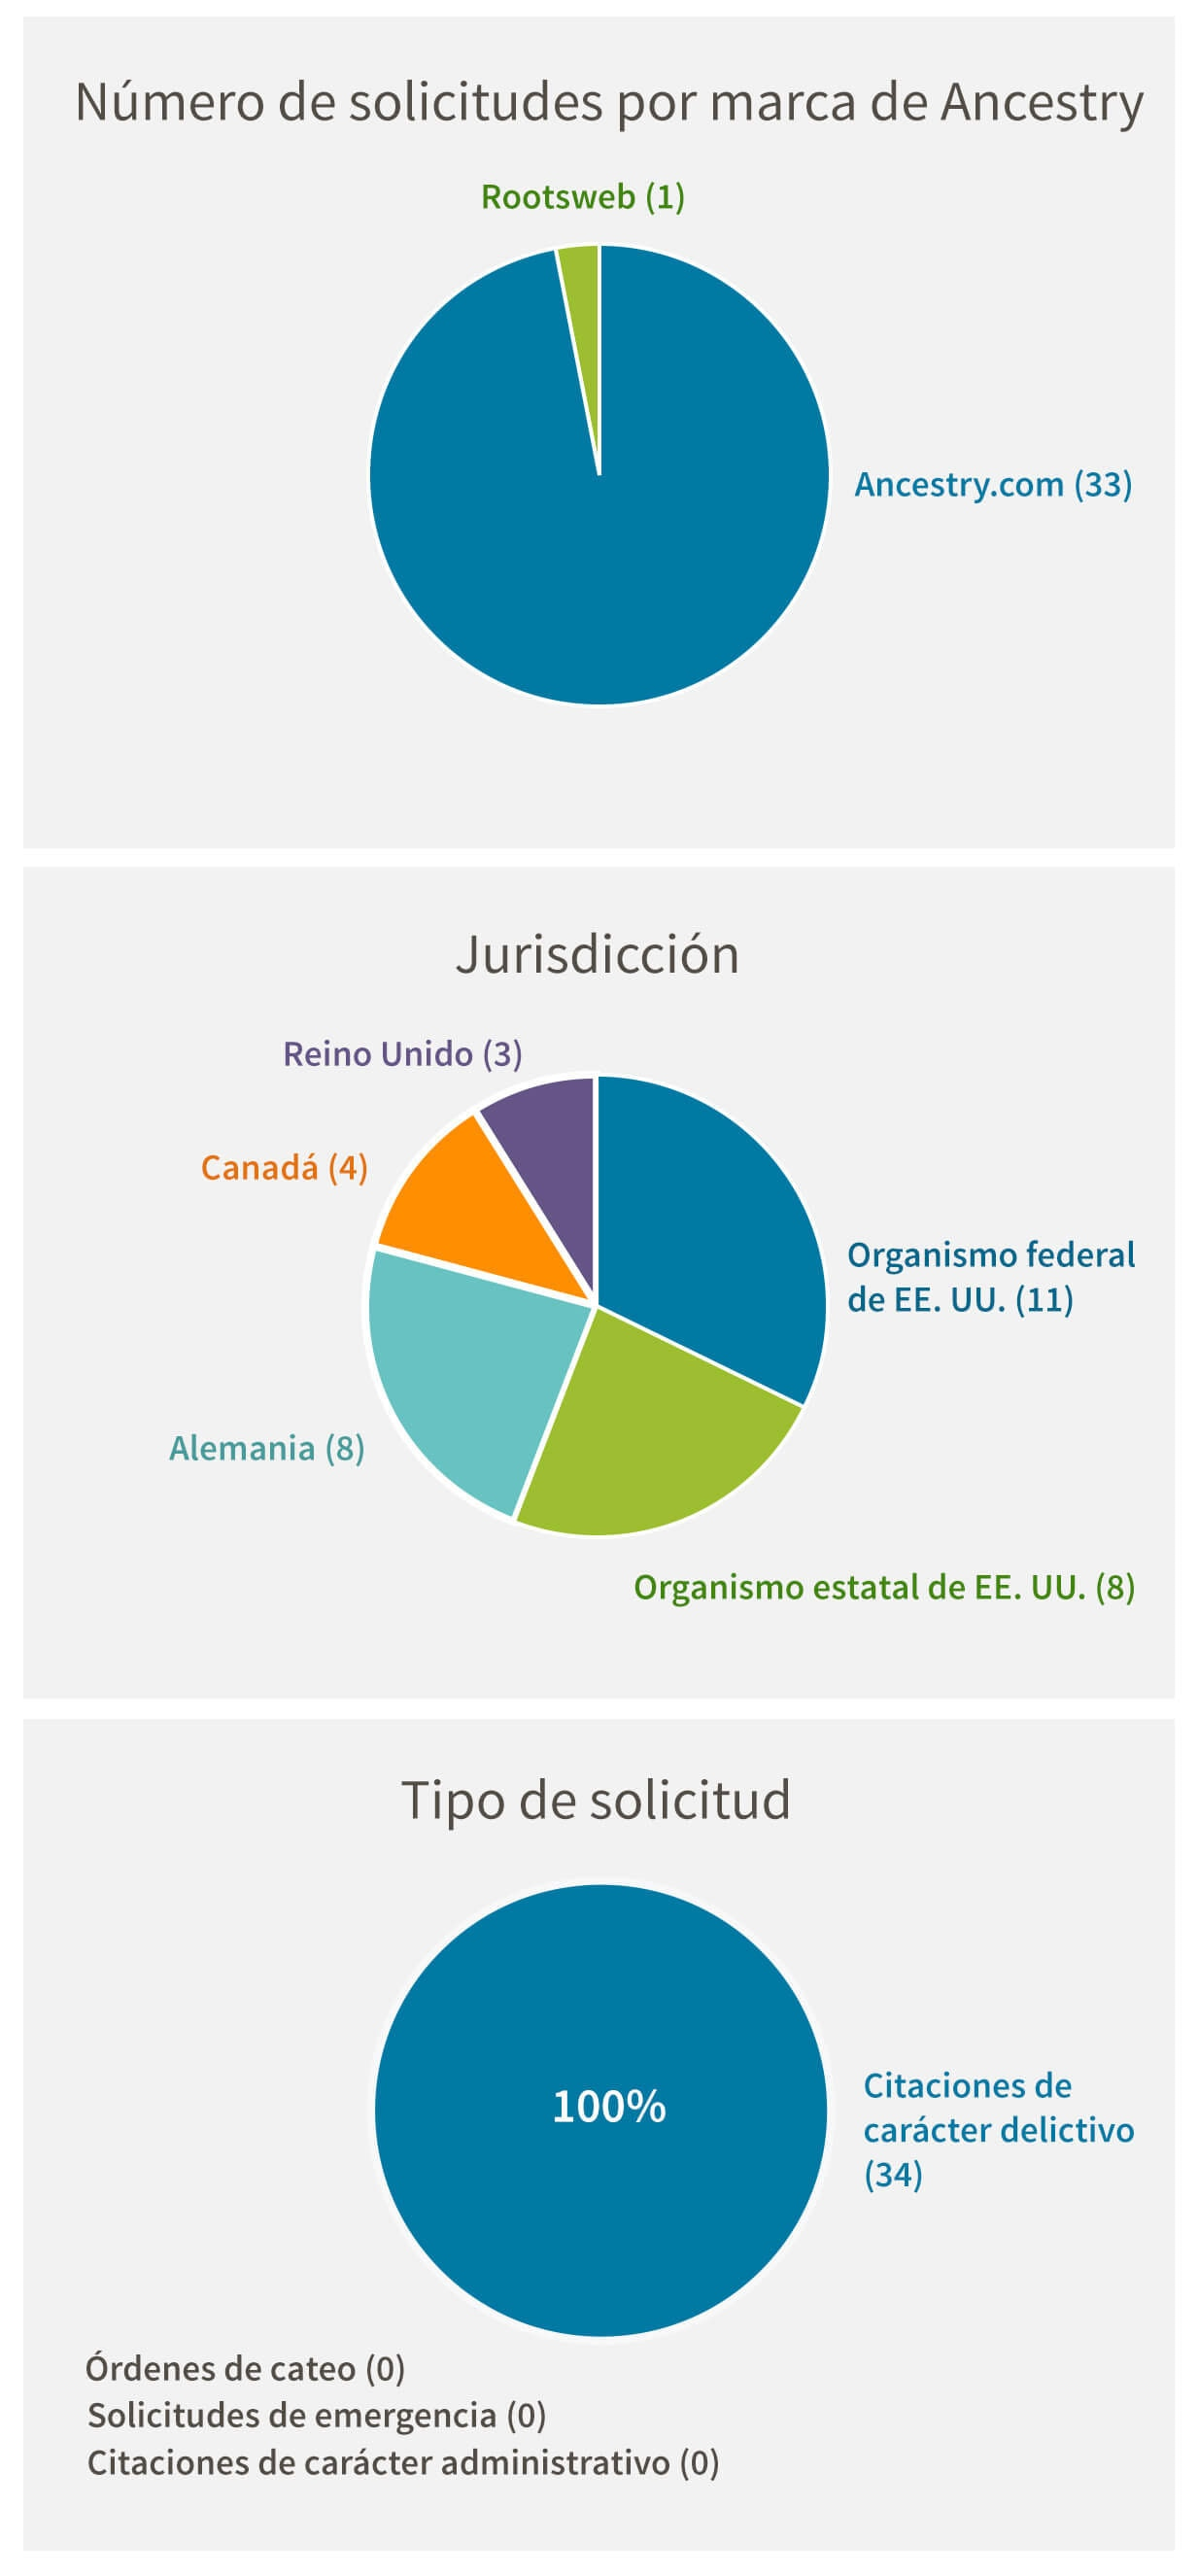 Número de solicitudes por marca de Ancestry: Ancestry.com (33), Rootsweb (1). Jurisdicción: US Federal (11), US State (8), Germany (8), Canada (4), United Kingdom (3). Tipo de solicitud: Criminal Subpoena (34), Search Warrant (0), Emergency Request (0), Administrative Subpoena (0)